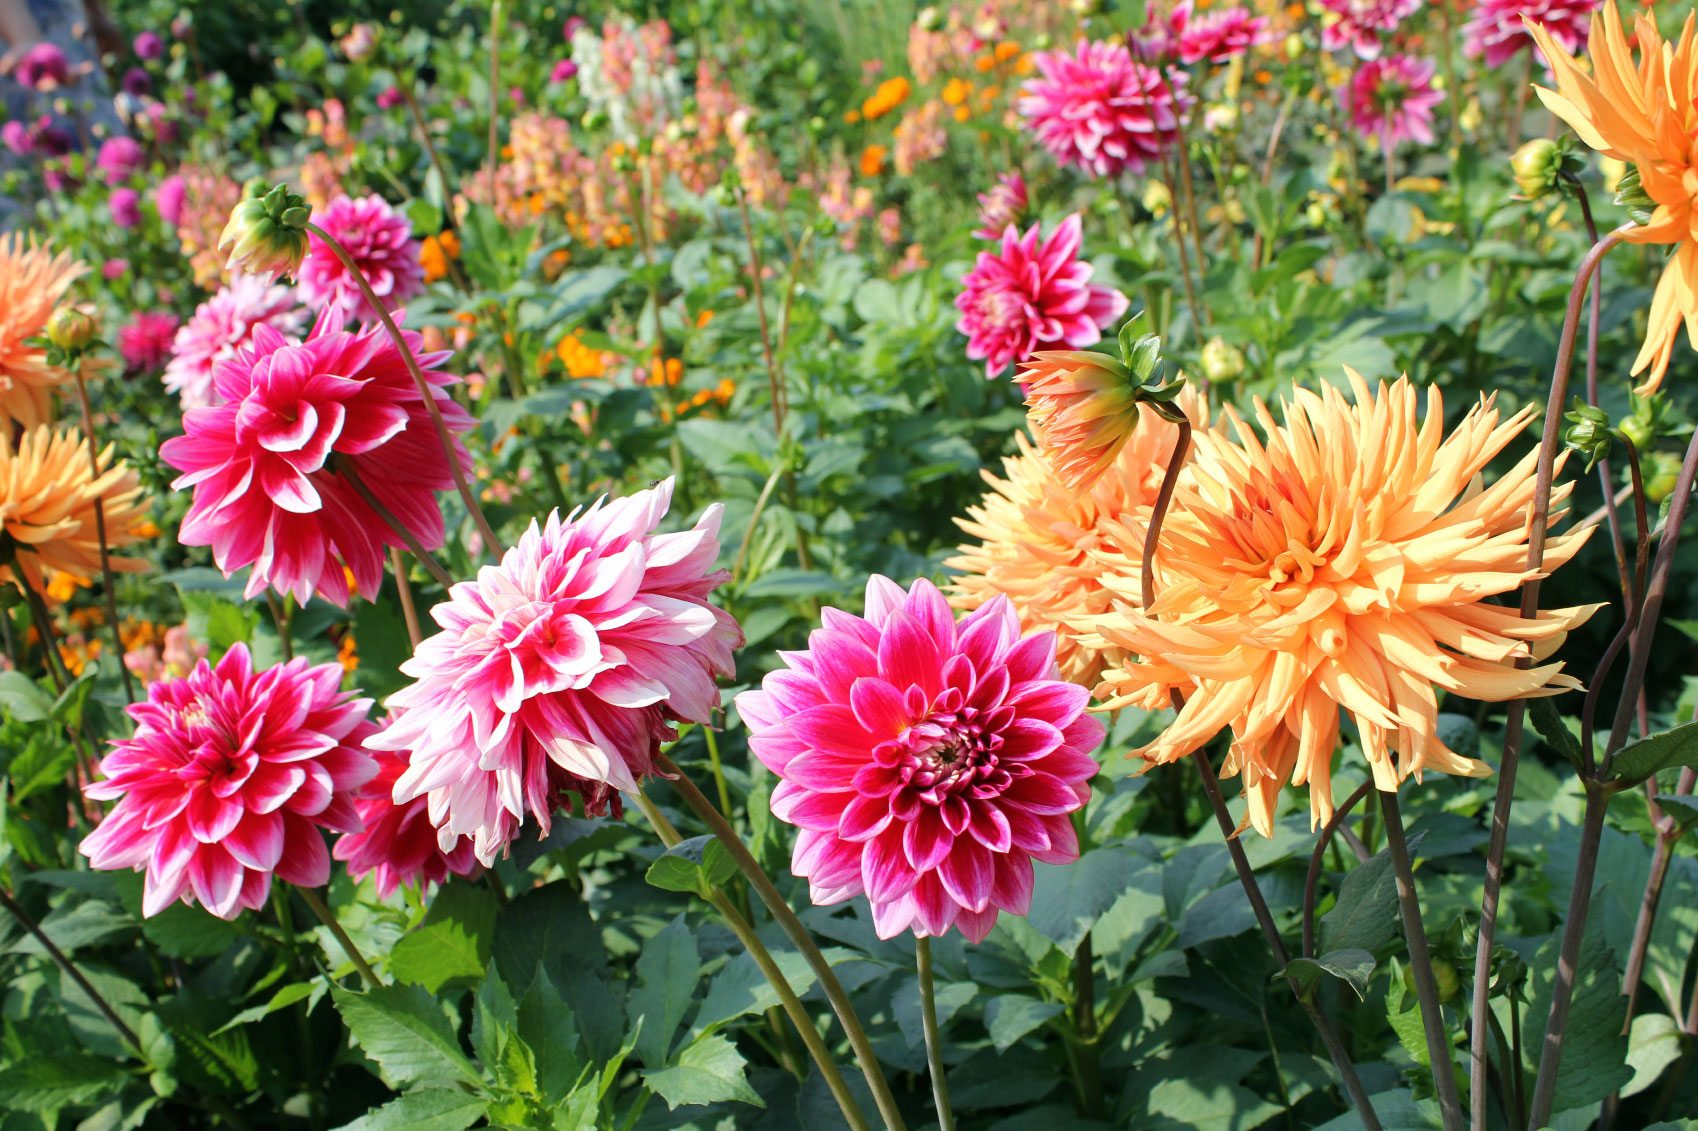 Dahlia growing tips caring for dahlia plants in the garden for Easy to care for outdoor flowering plants